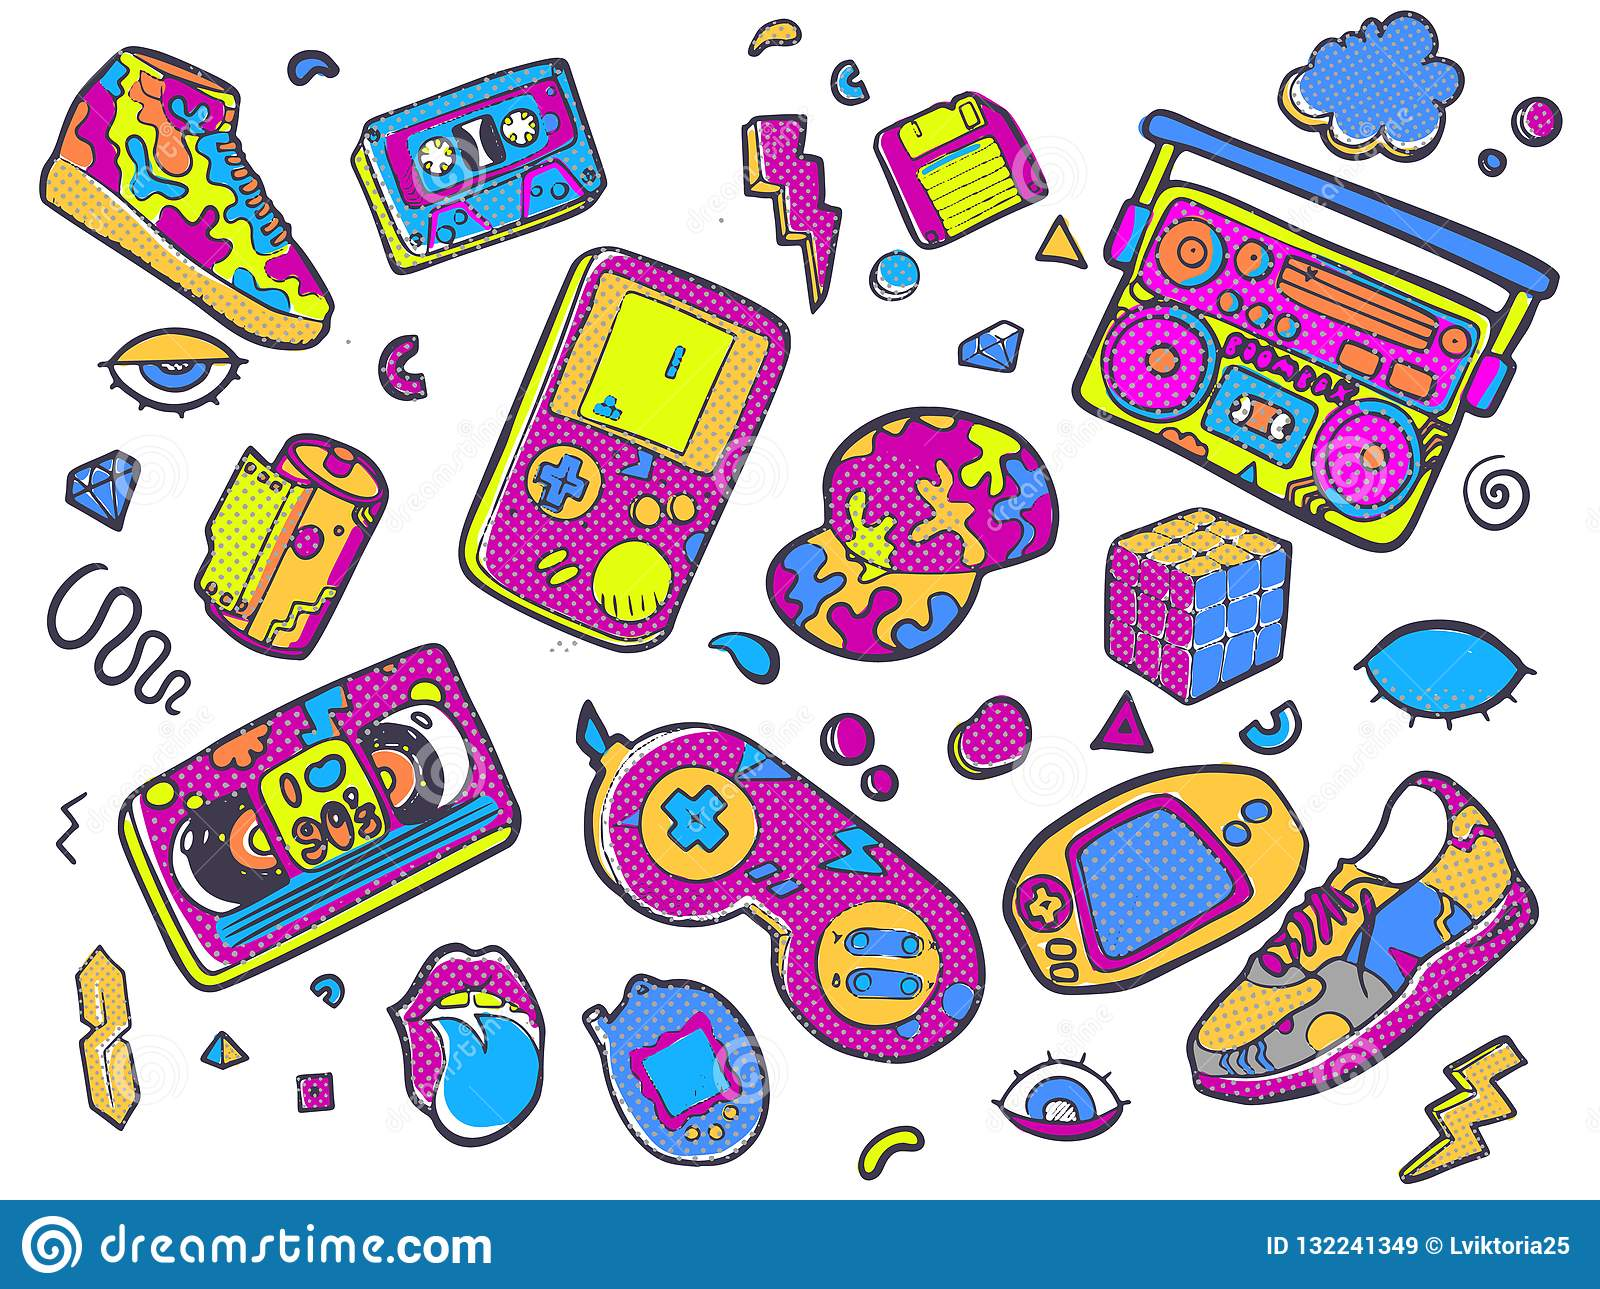 Back To The 90s  Vector Illustration In Trendy 80s-90s Style  Stock